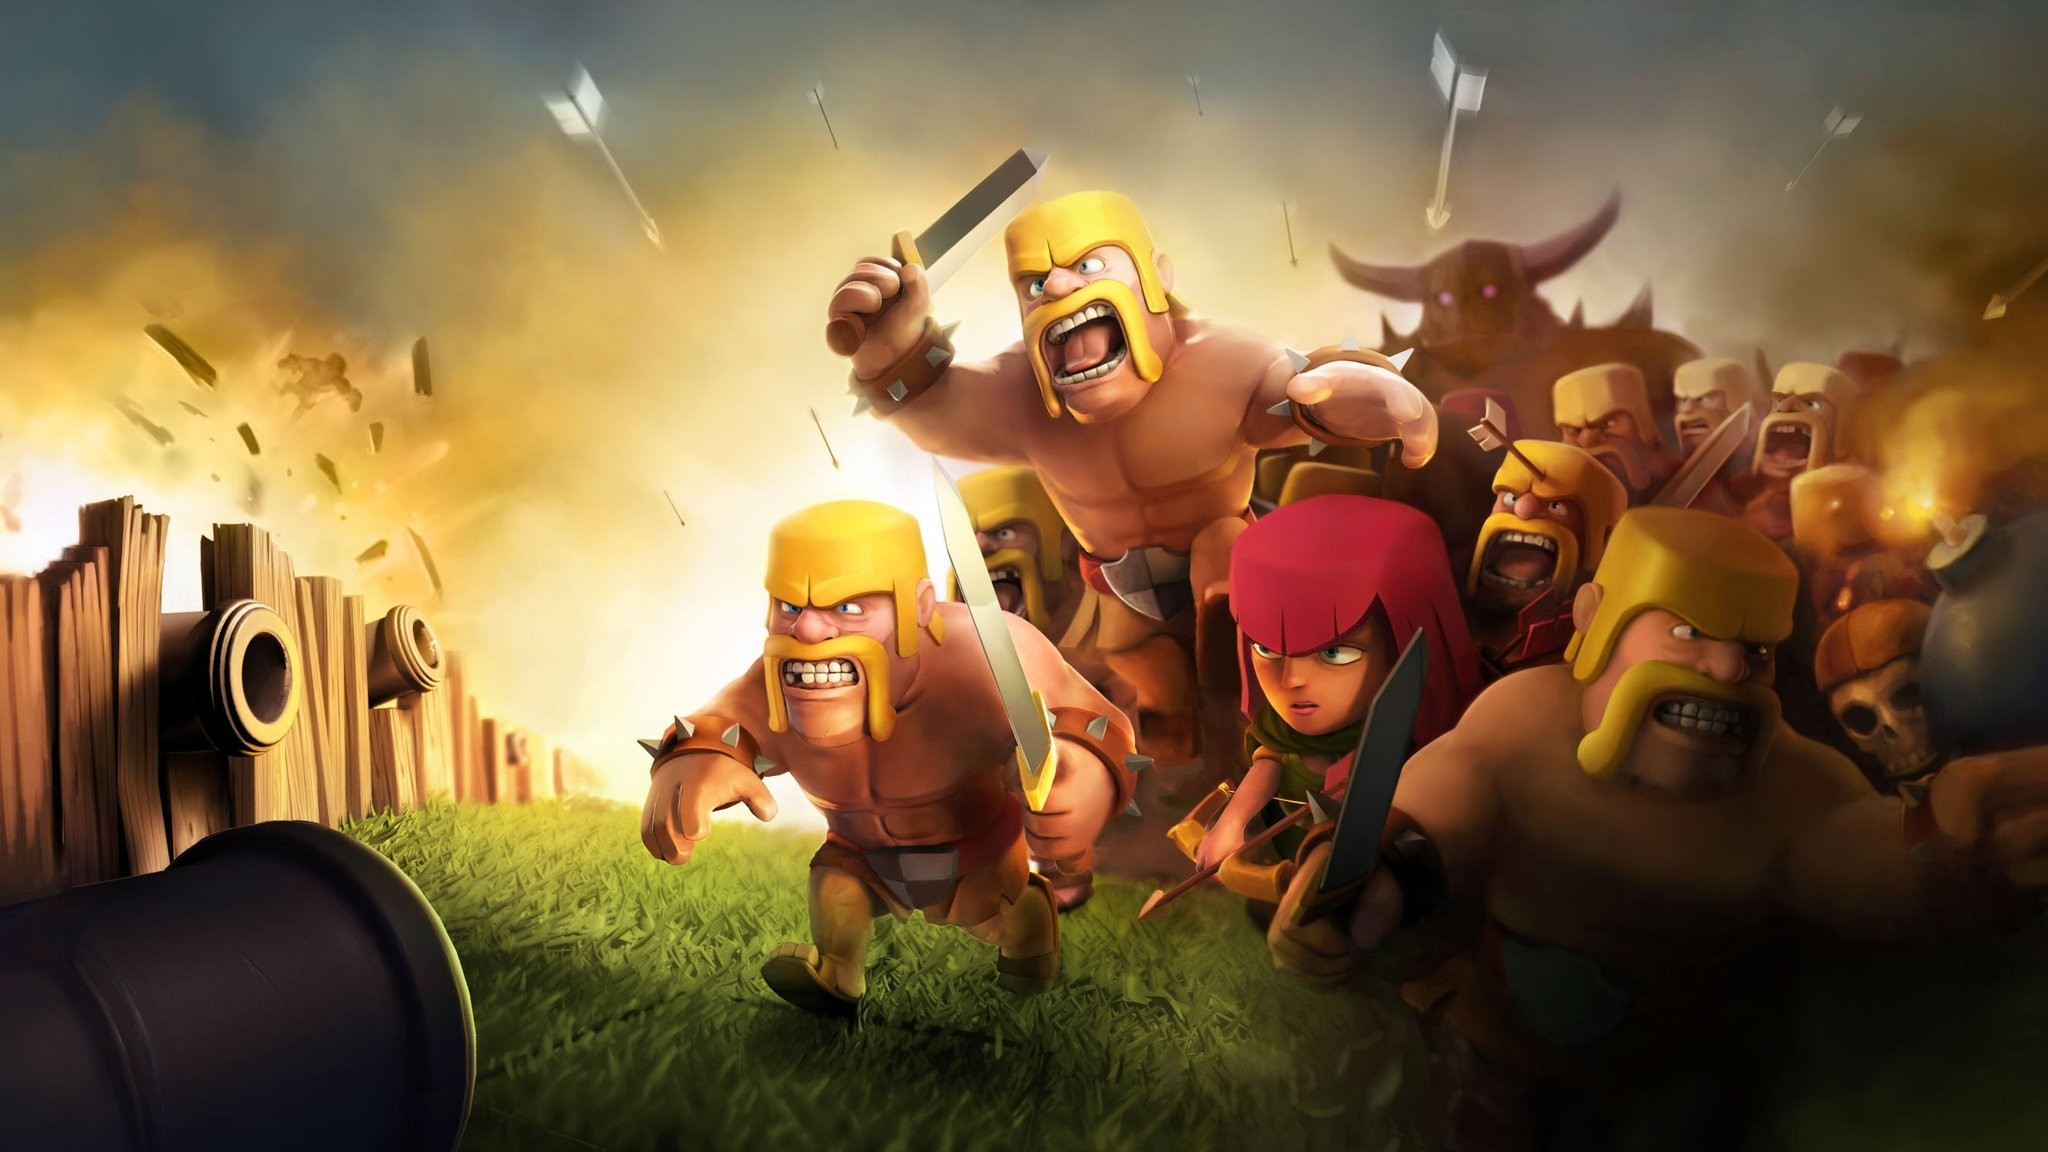 Clash Royale Wallpapers 80 Images